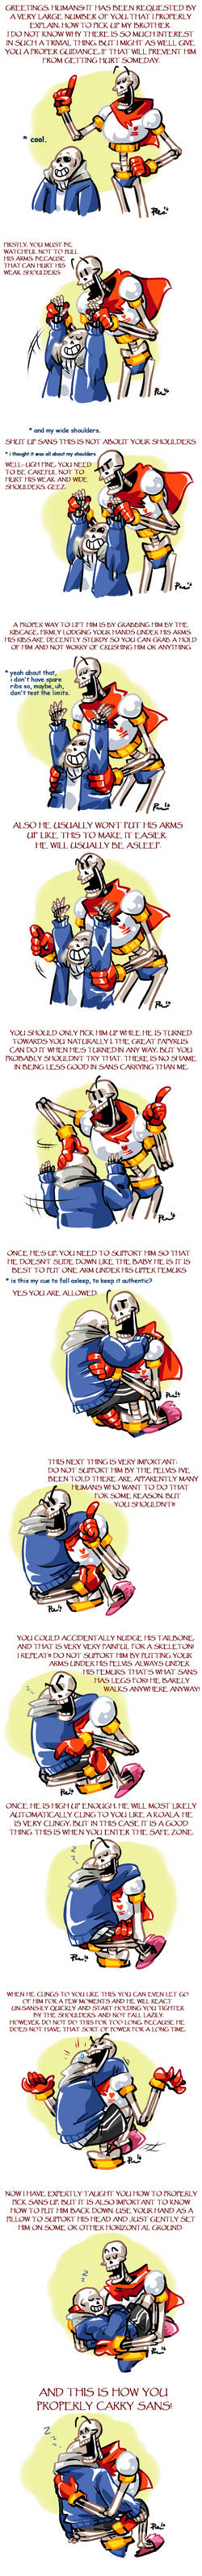 Undertale ask blog: A GUIDE TO CARRYING SANS